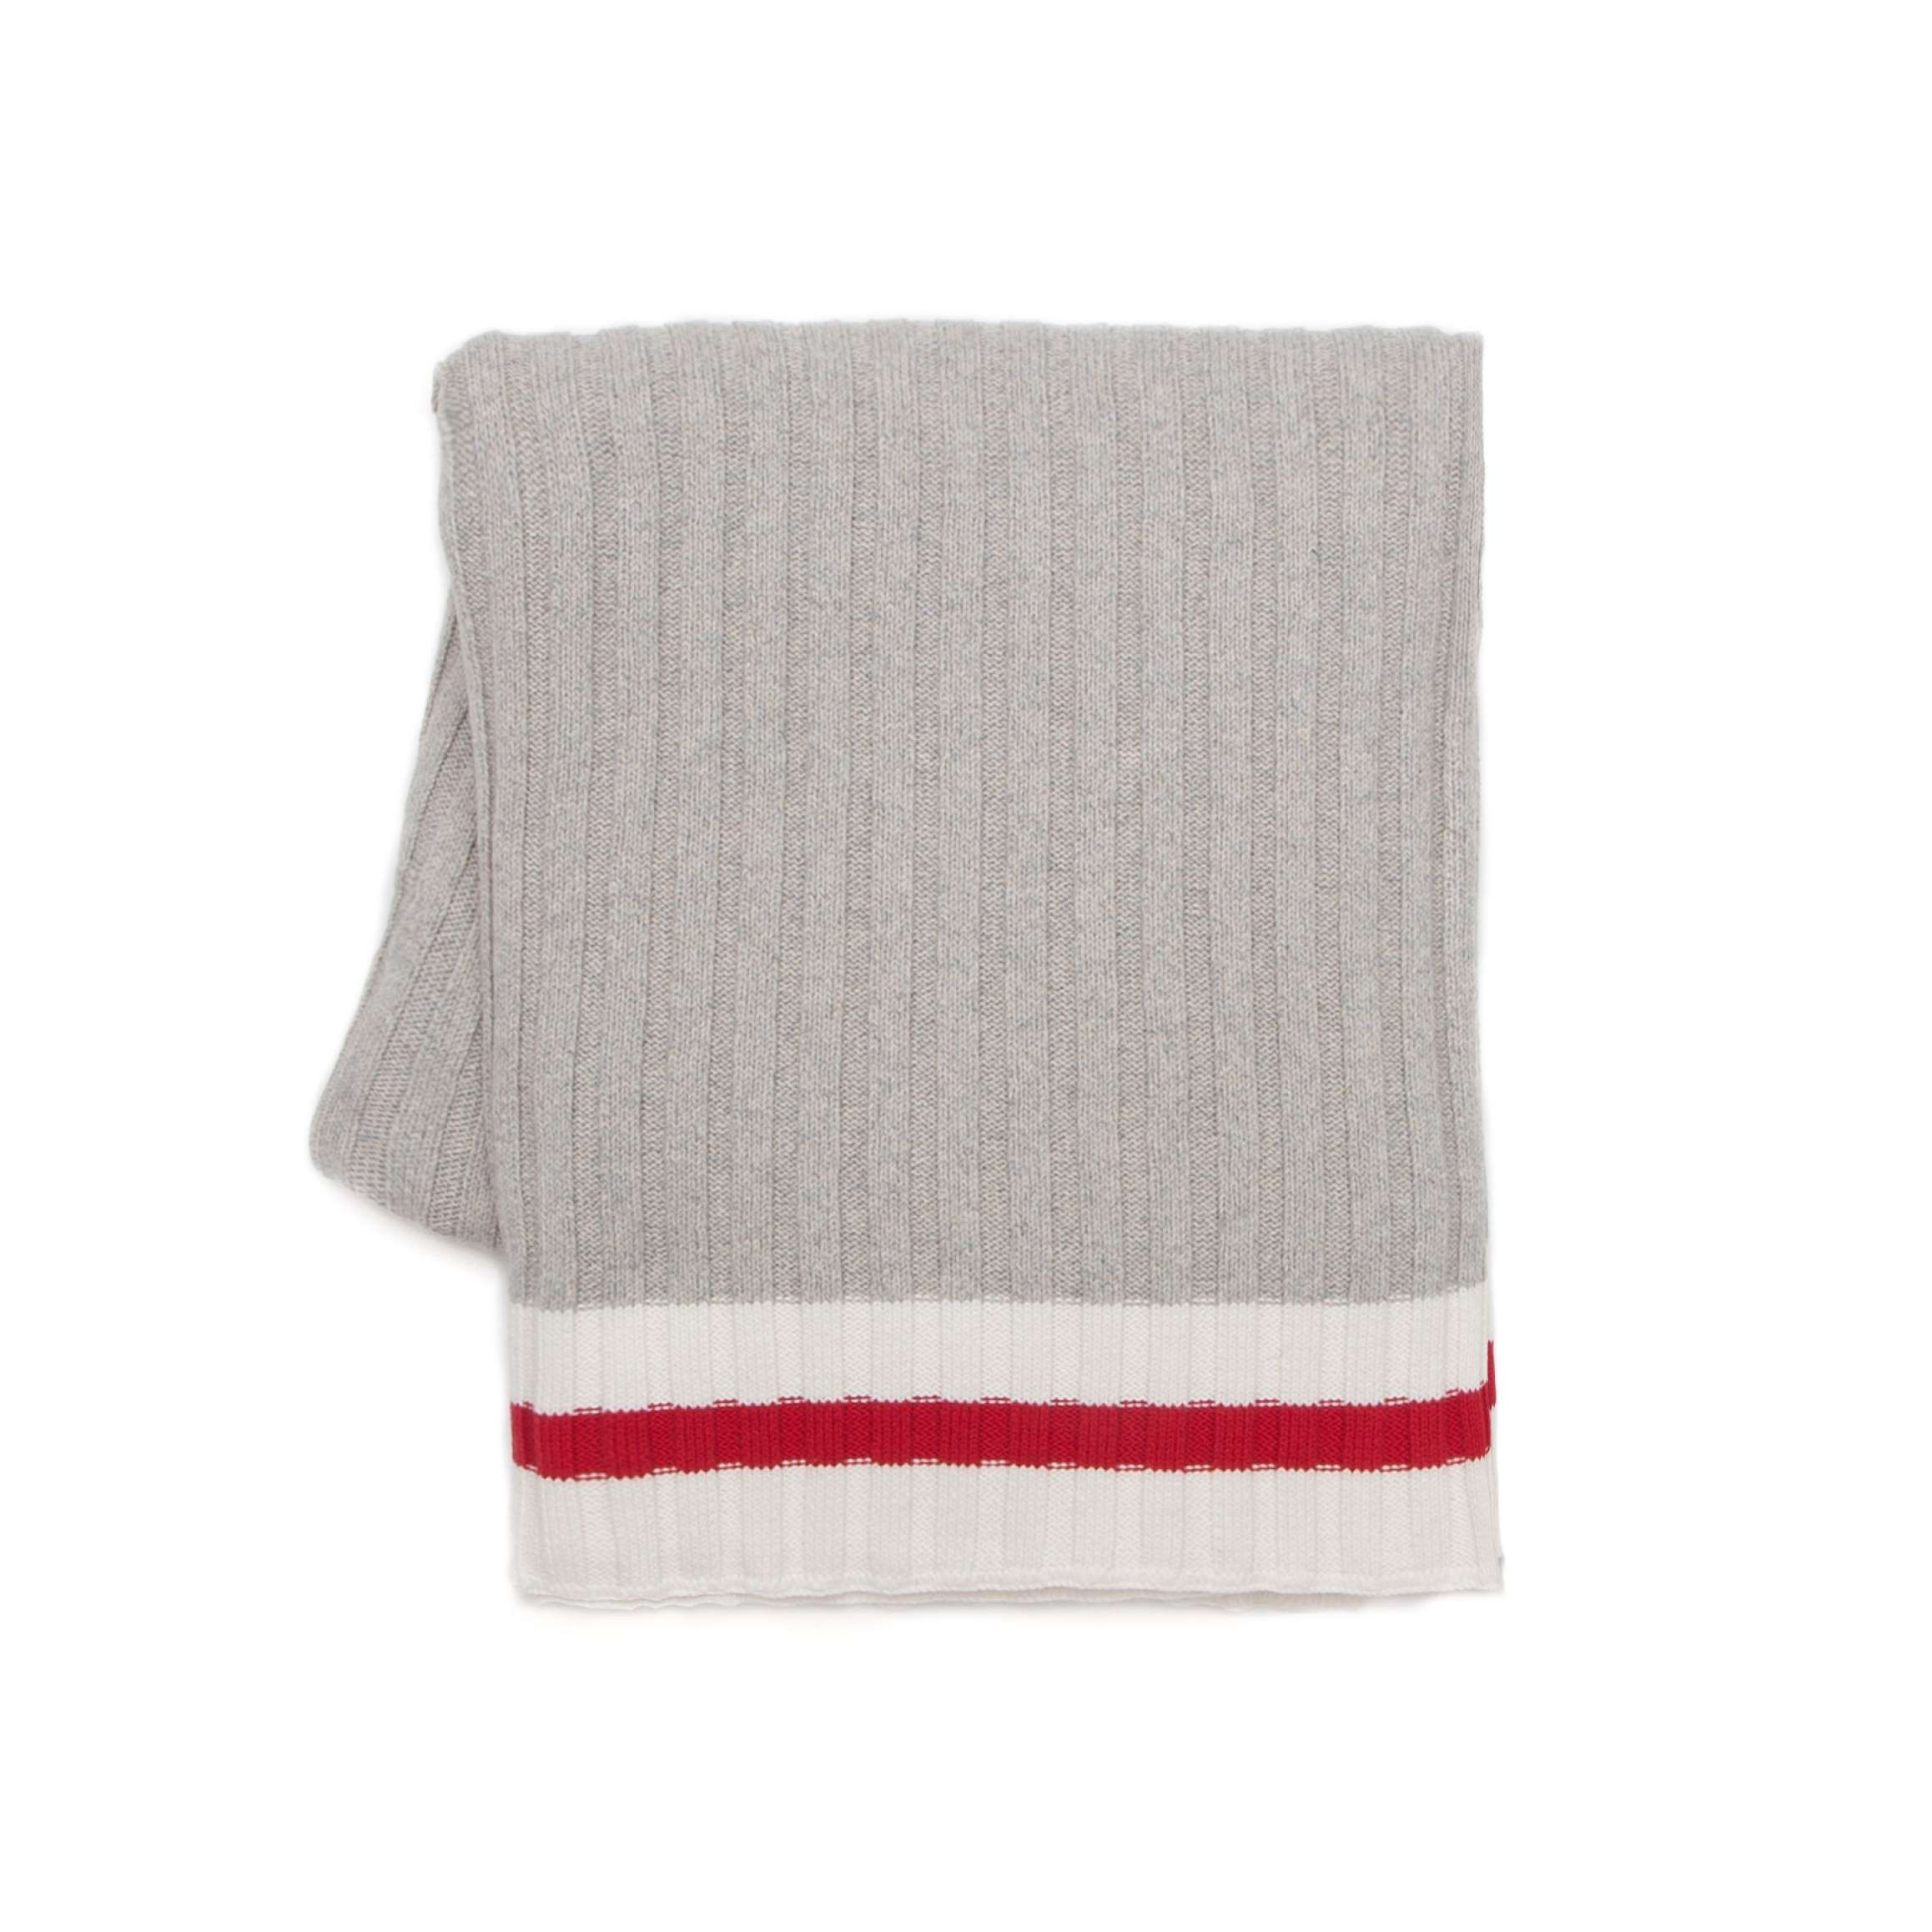 Roots Cabin Throw | Roots Home Gifts | Roots